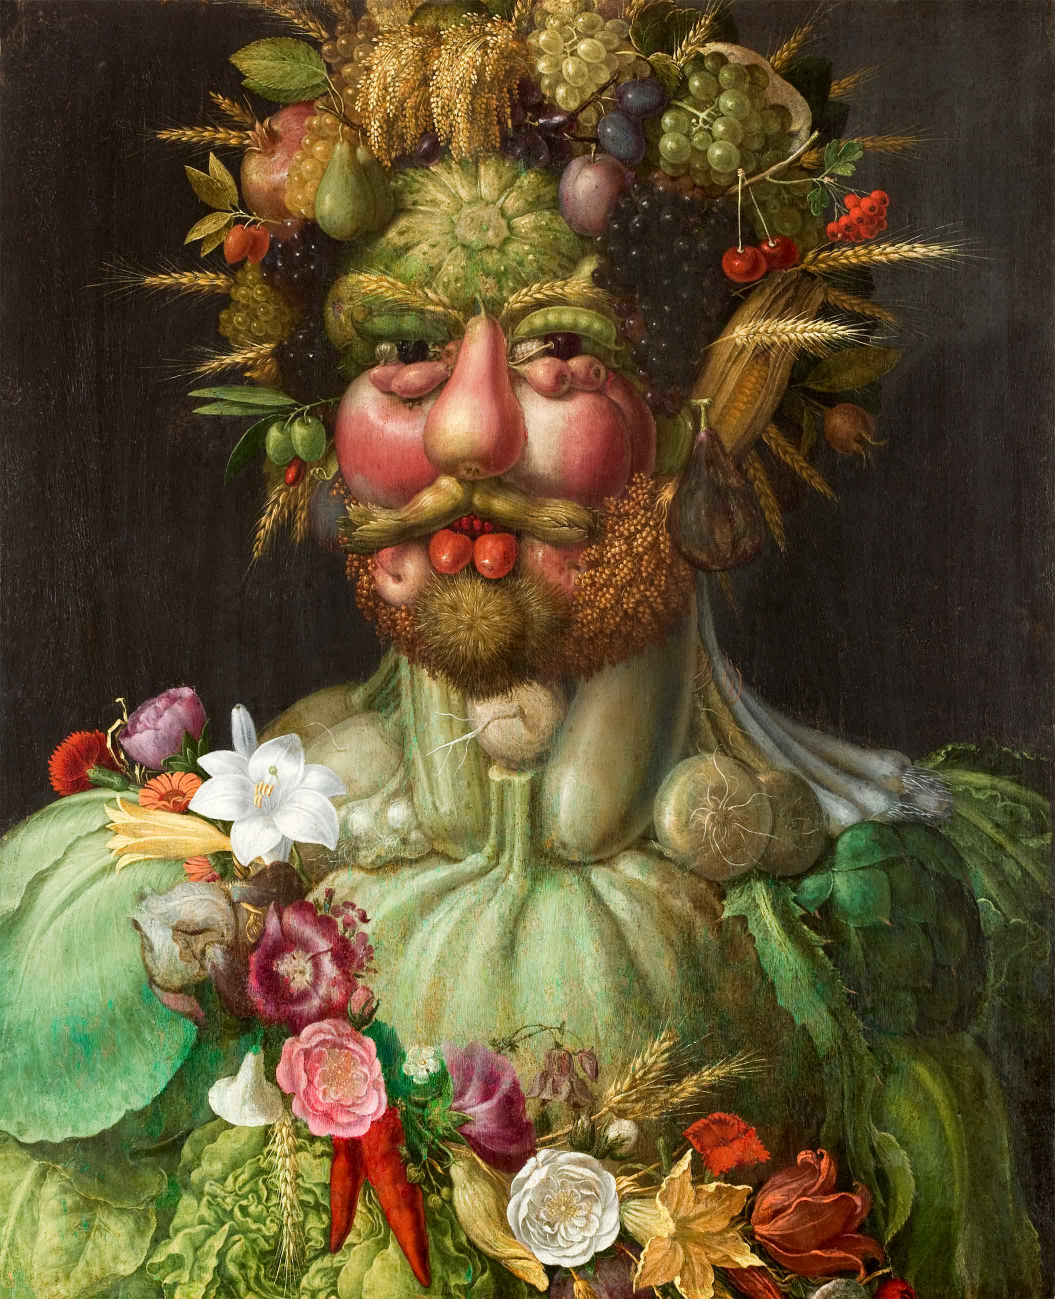 Portrait of a man made of fruits and vegetables